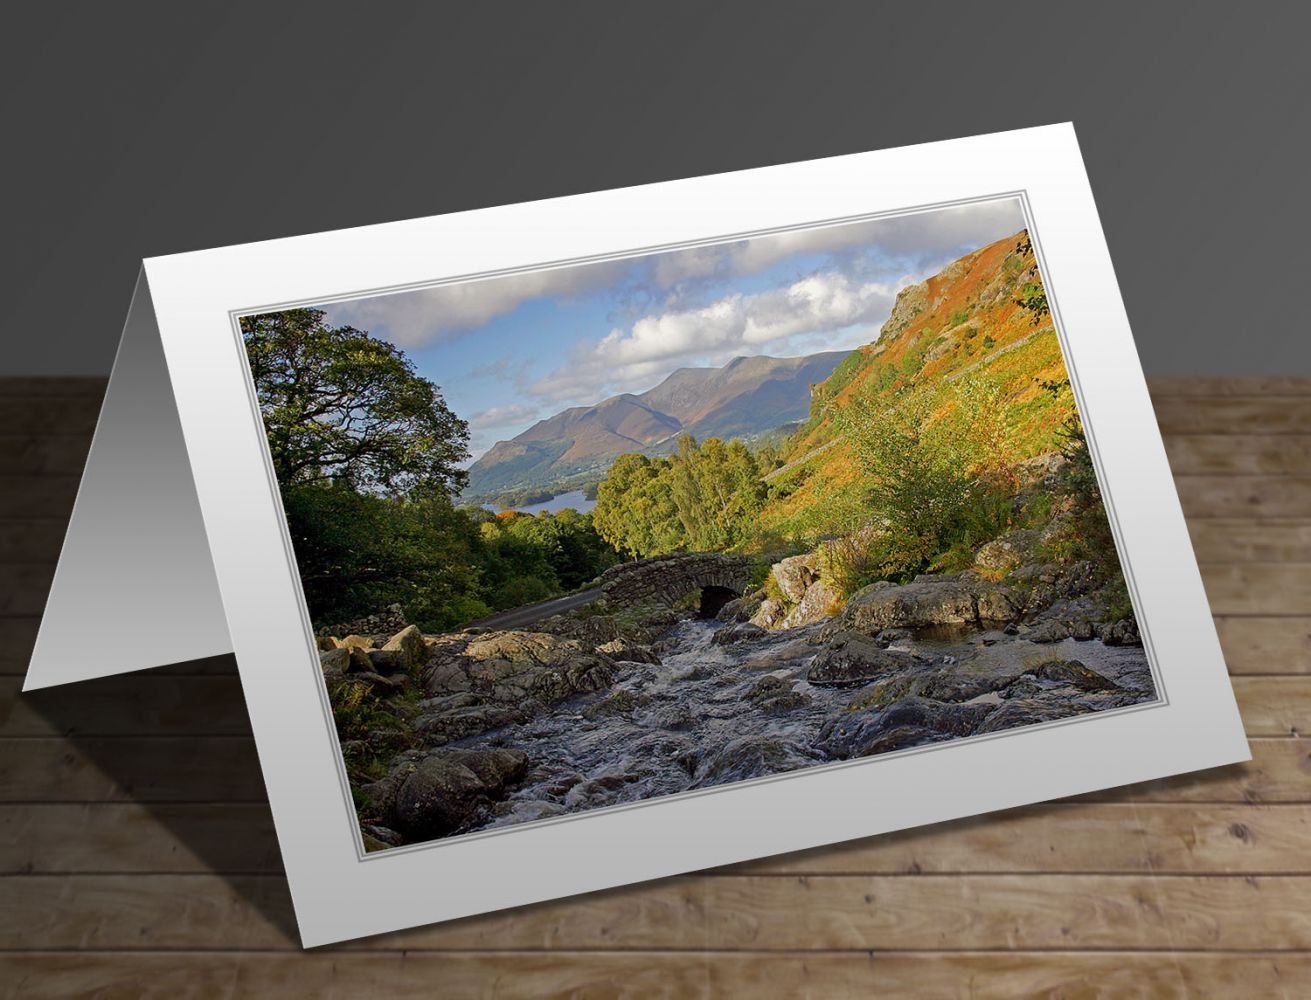 A greeting card containing the image Autumn sunshine at Ashness Bridge in the English Lake District by Martin Lawrence